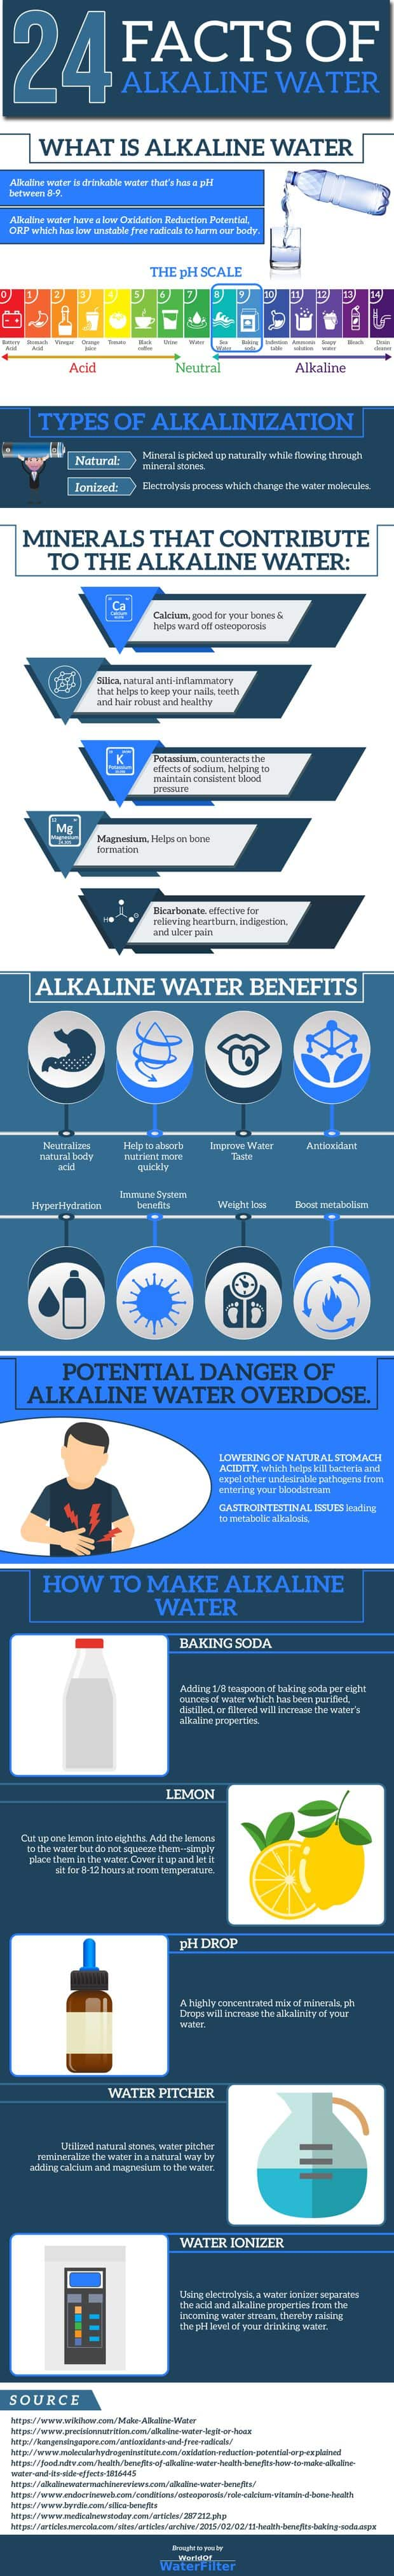 Alkaline Water Benefits and Risks